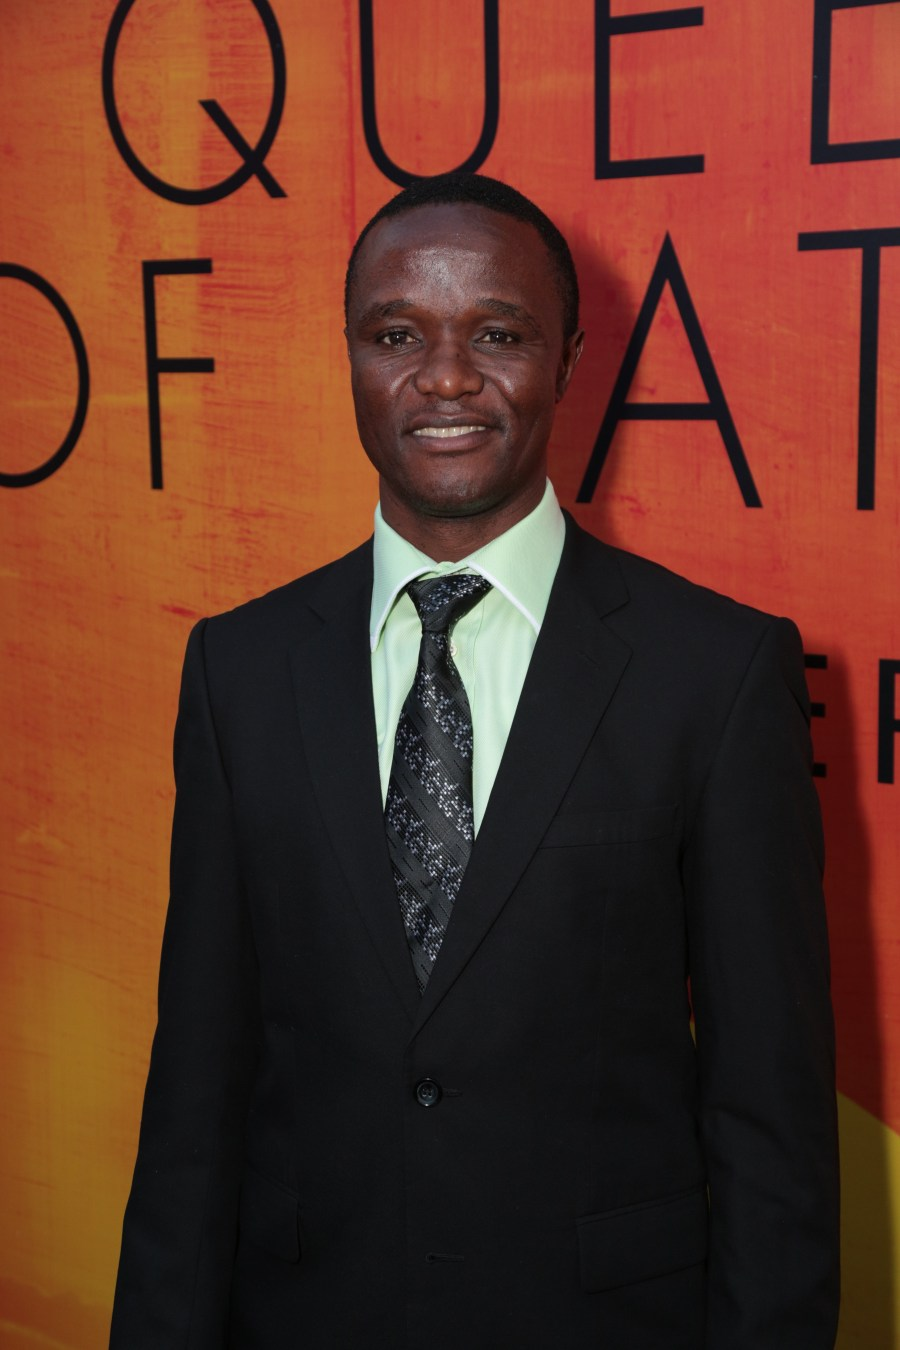 Robert Katende at the U.S. premiere of Disney's Queen of Katwe at the El Capitan Theatre in Hollywood, CA on Tuesday, September 20, 2016.(Photo: Alex J. Berliner/ABImages)